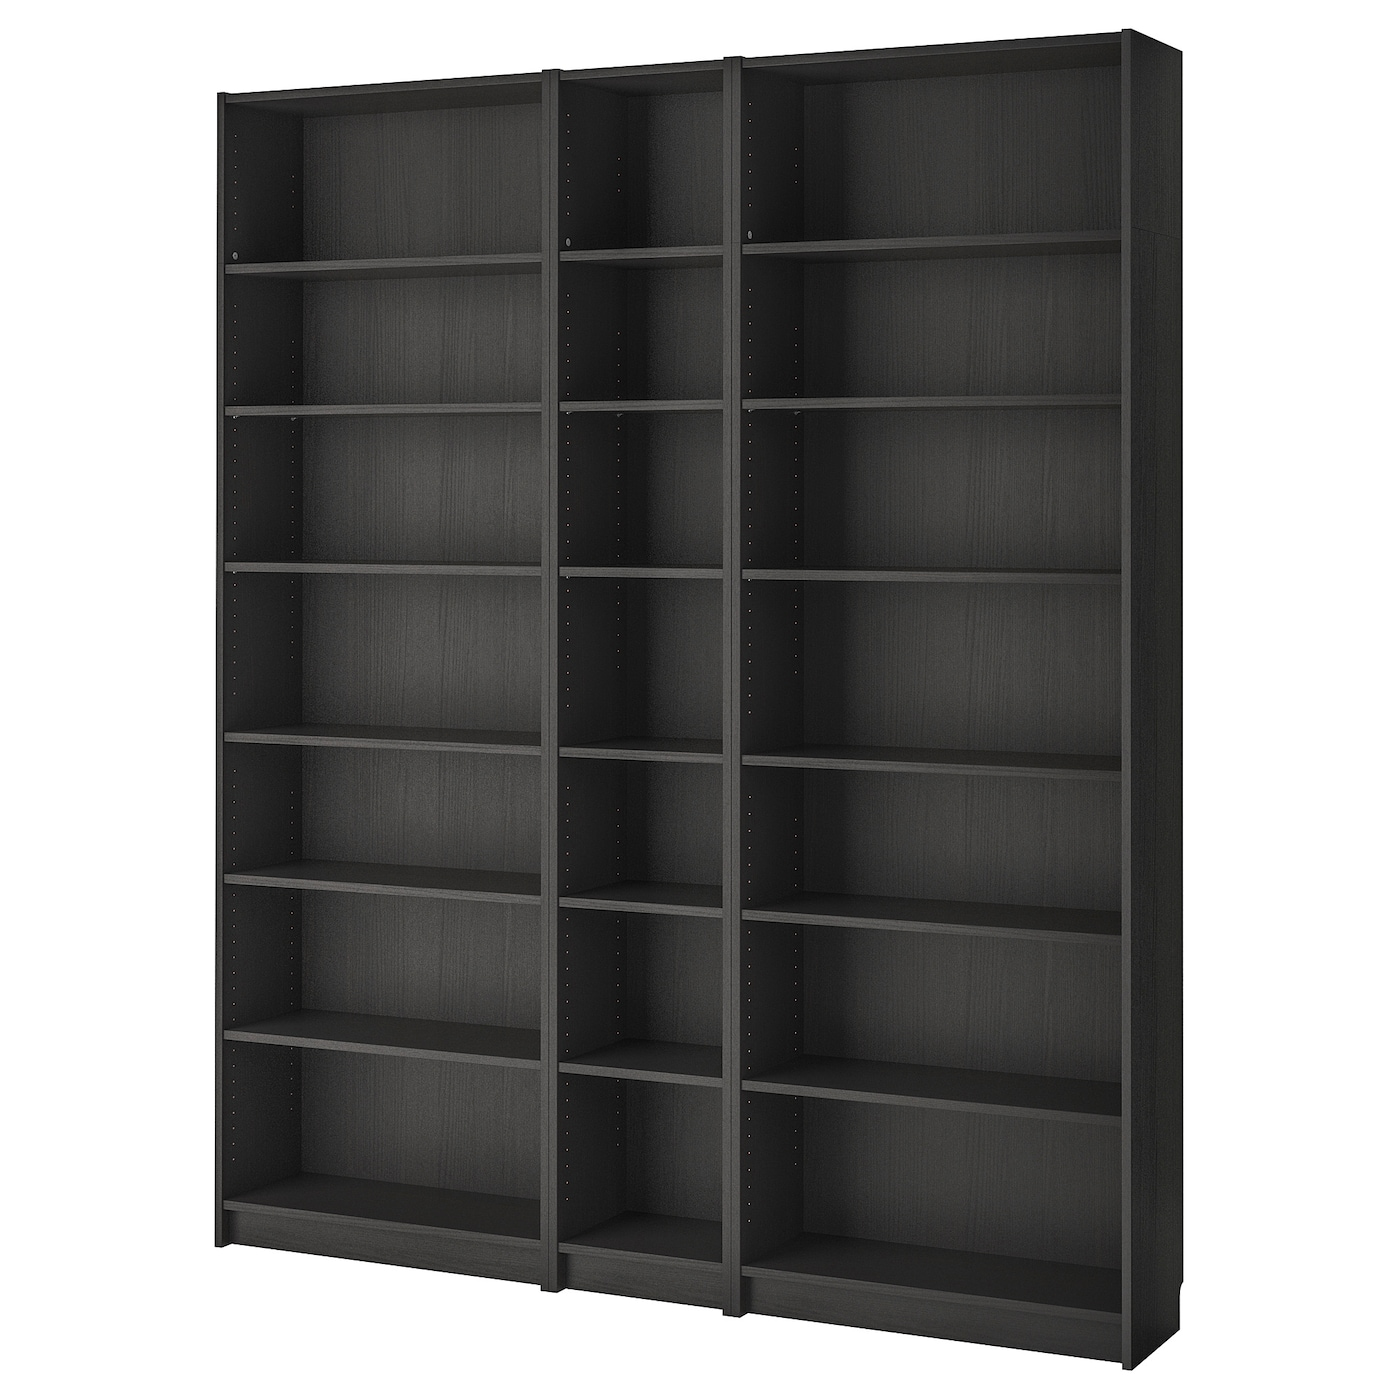 Libreria A Porta Di Roma billy bookcase - black-brown 200x28x237 cm